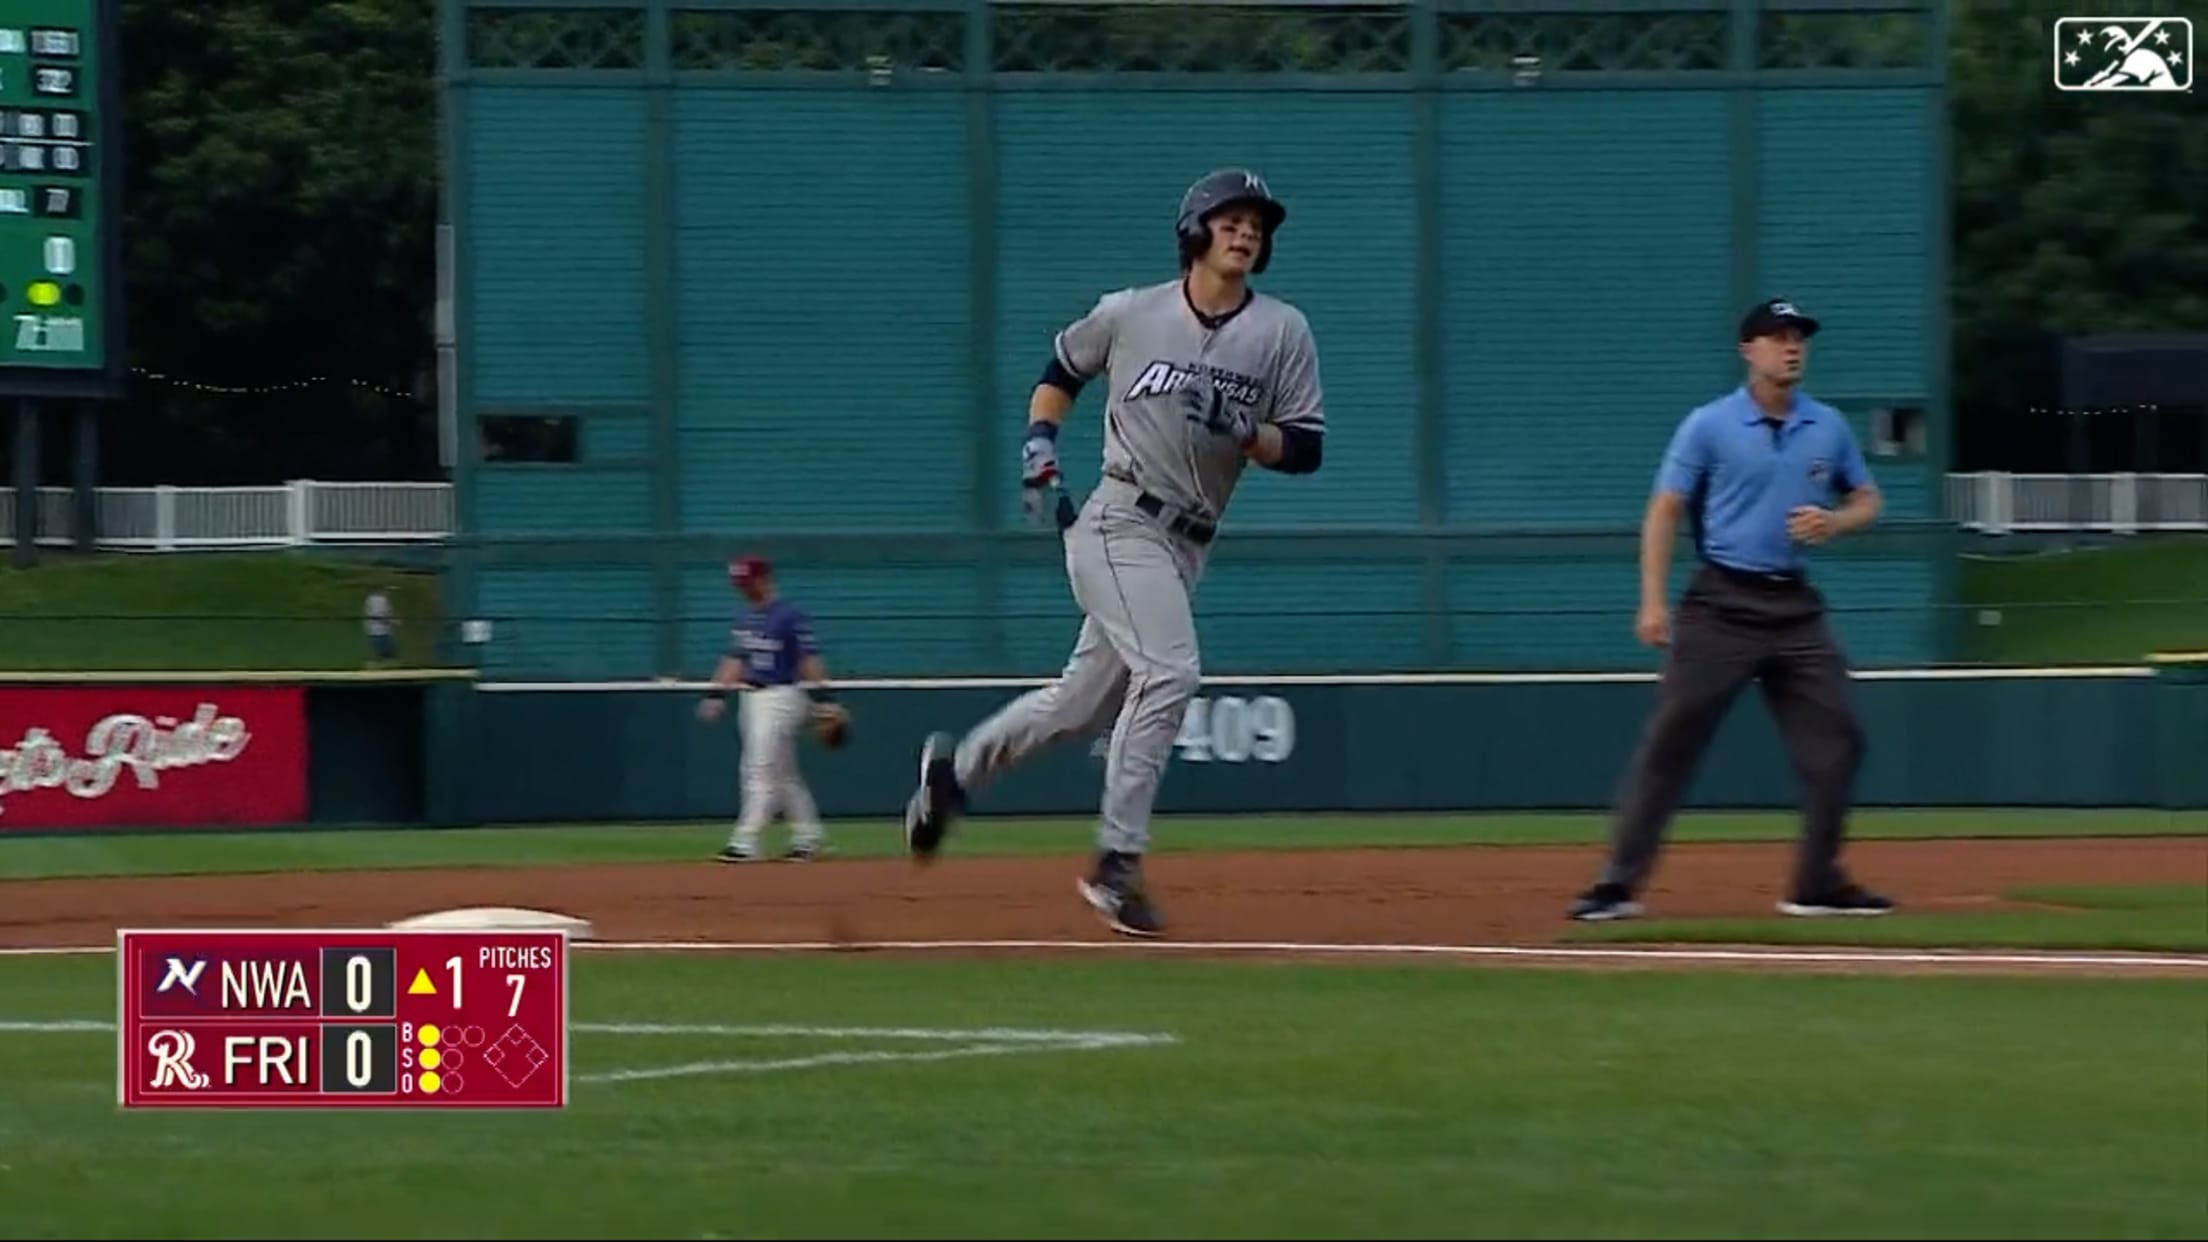 Witt's 10th HR of '21 at Double-A